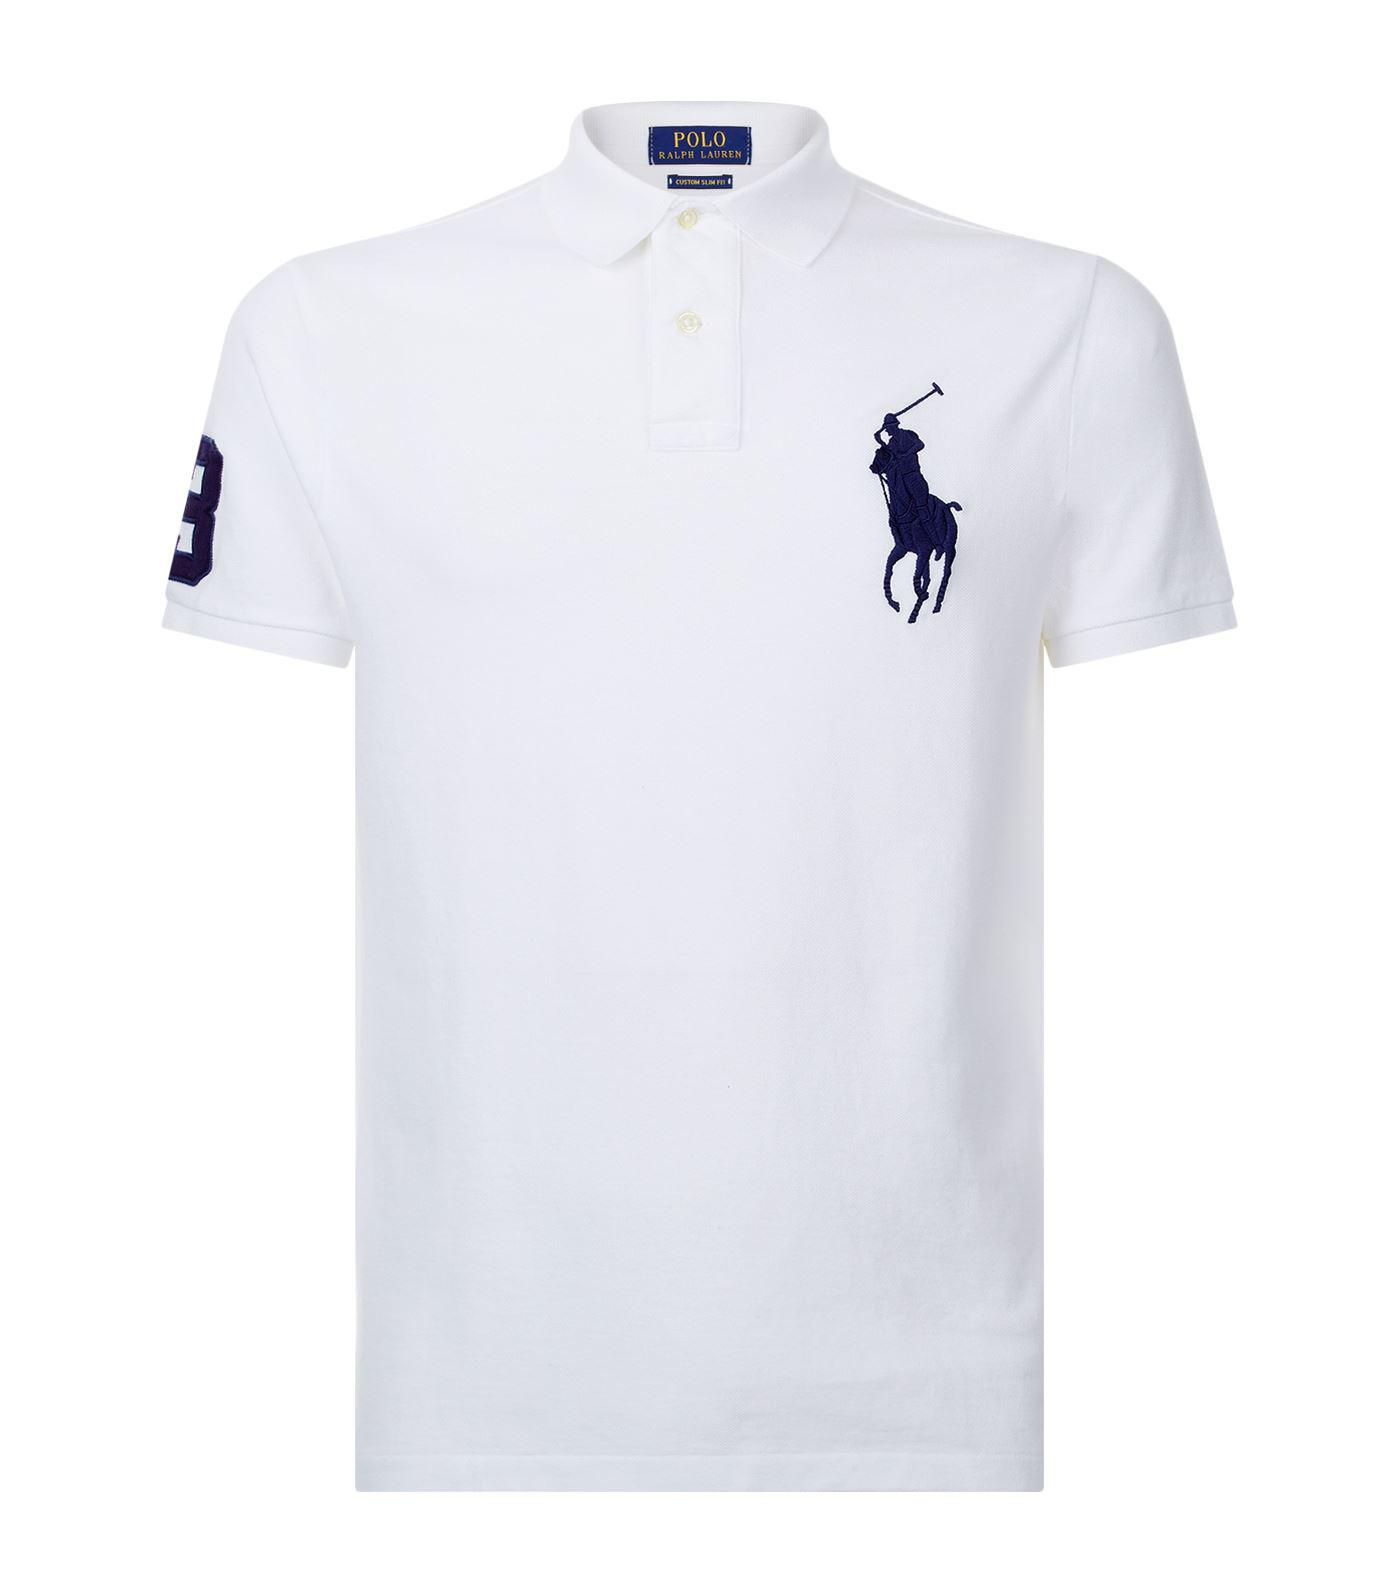 9bc18ae9 Lyst - Polo Ralph Lauren Big Pony Polo Shirt in White for Men